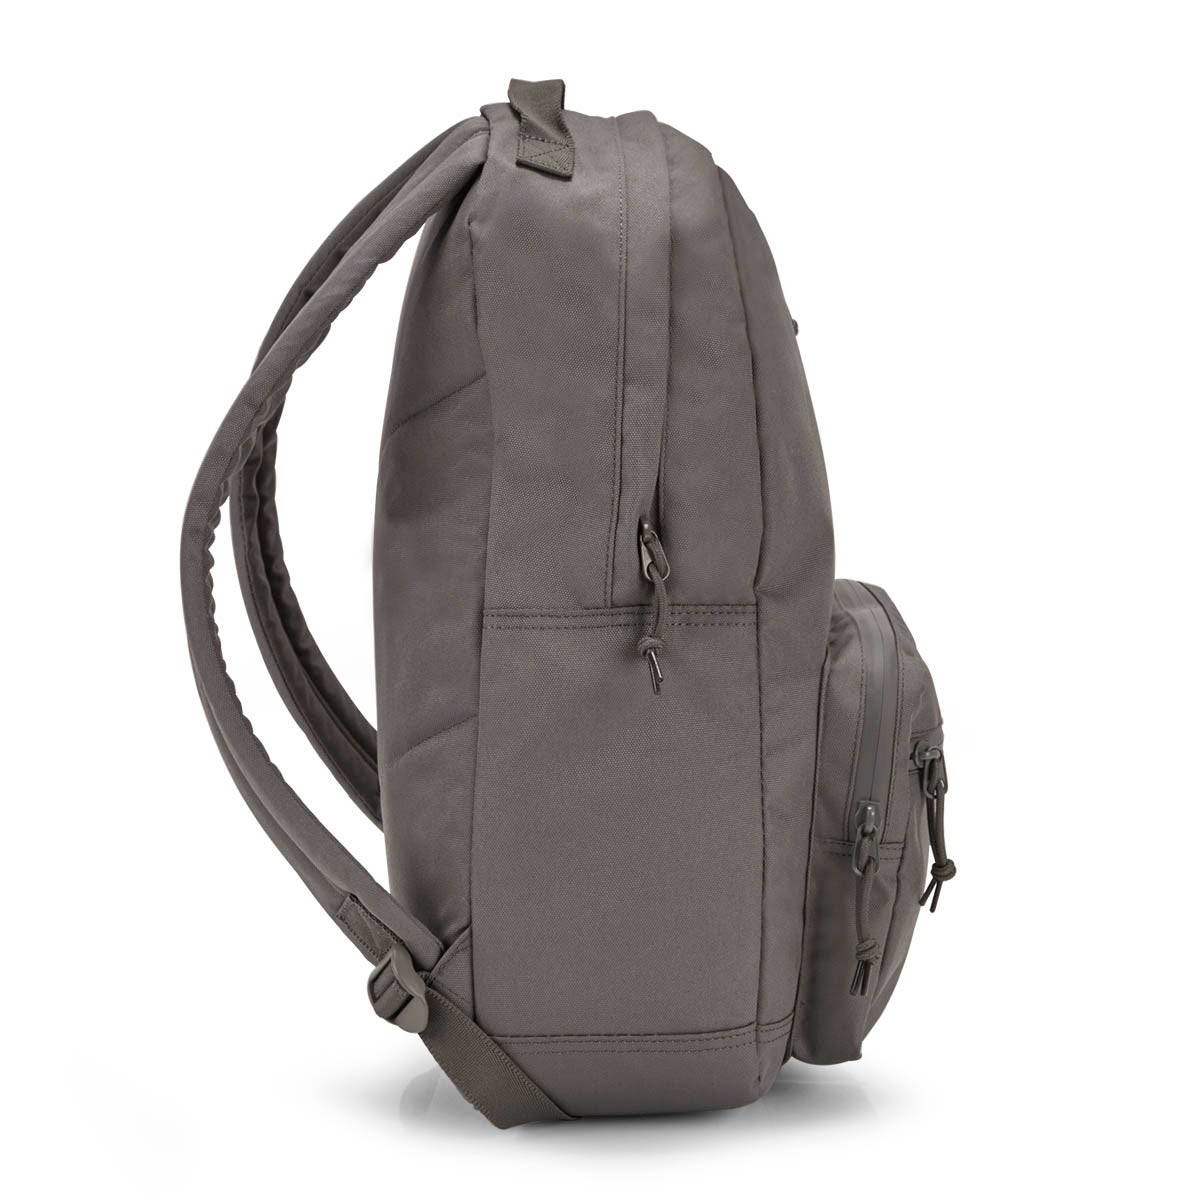 Unisex The GO charcoal backpack